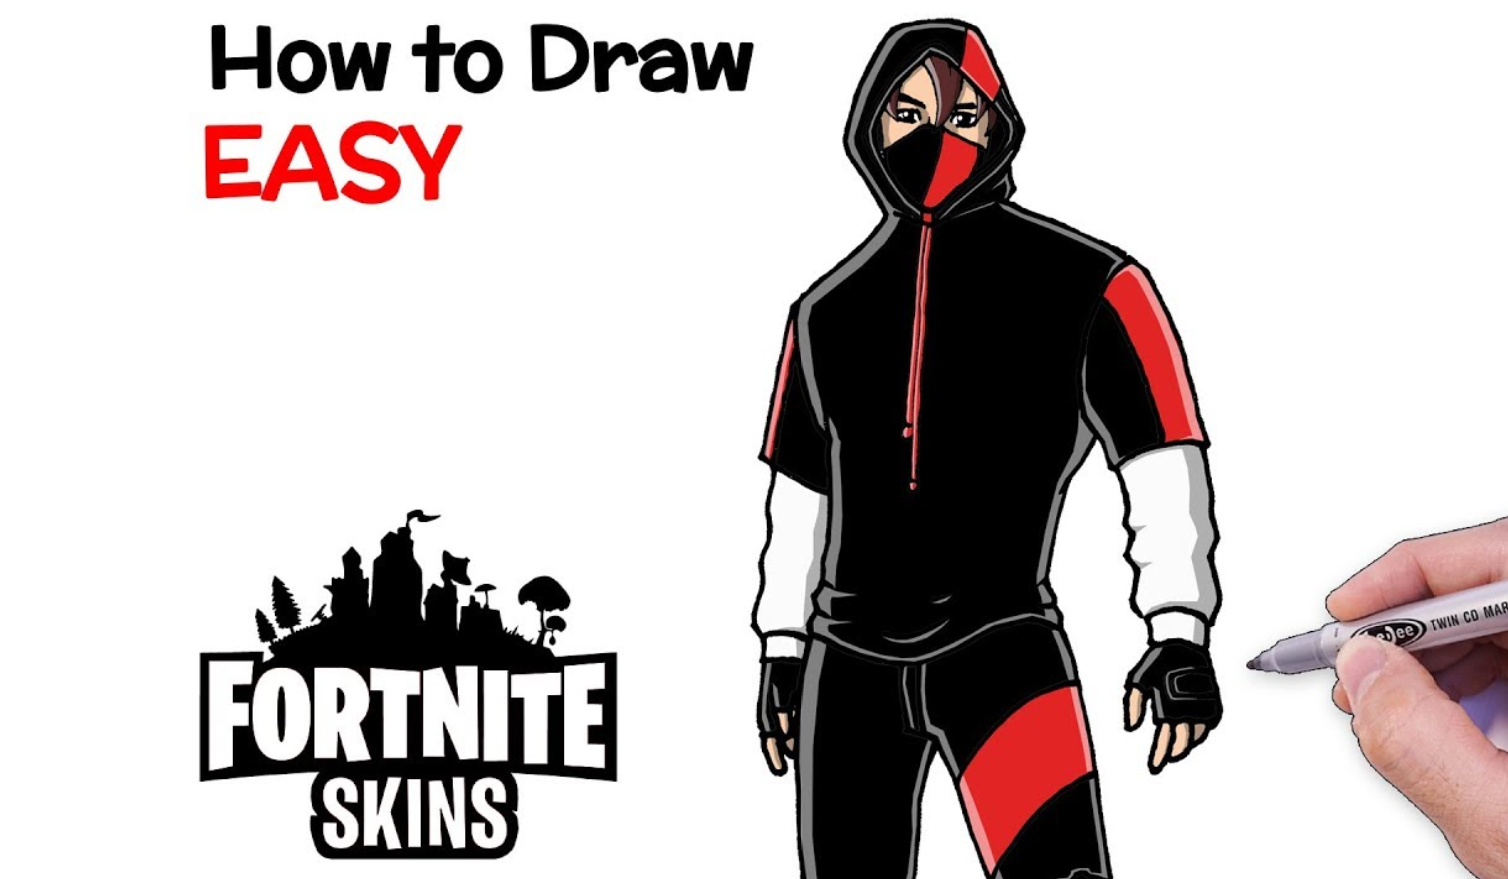 How to draw Fortnite Skins